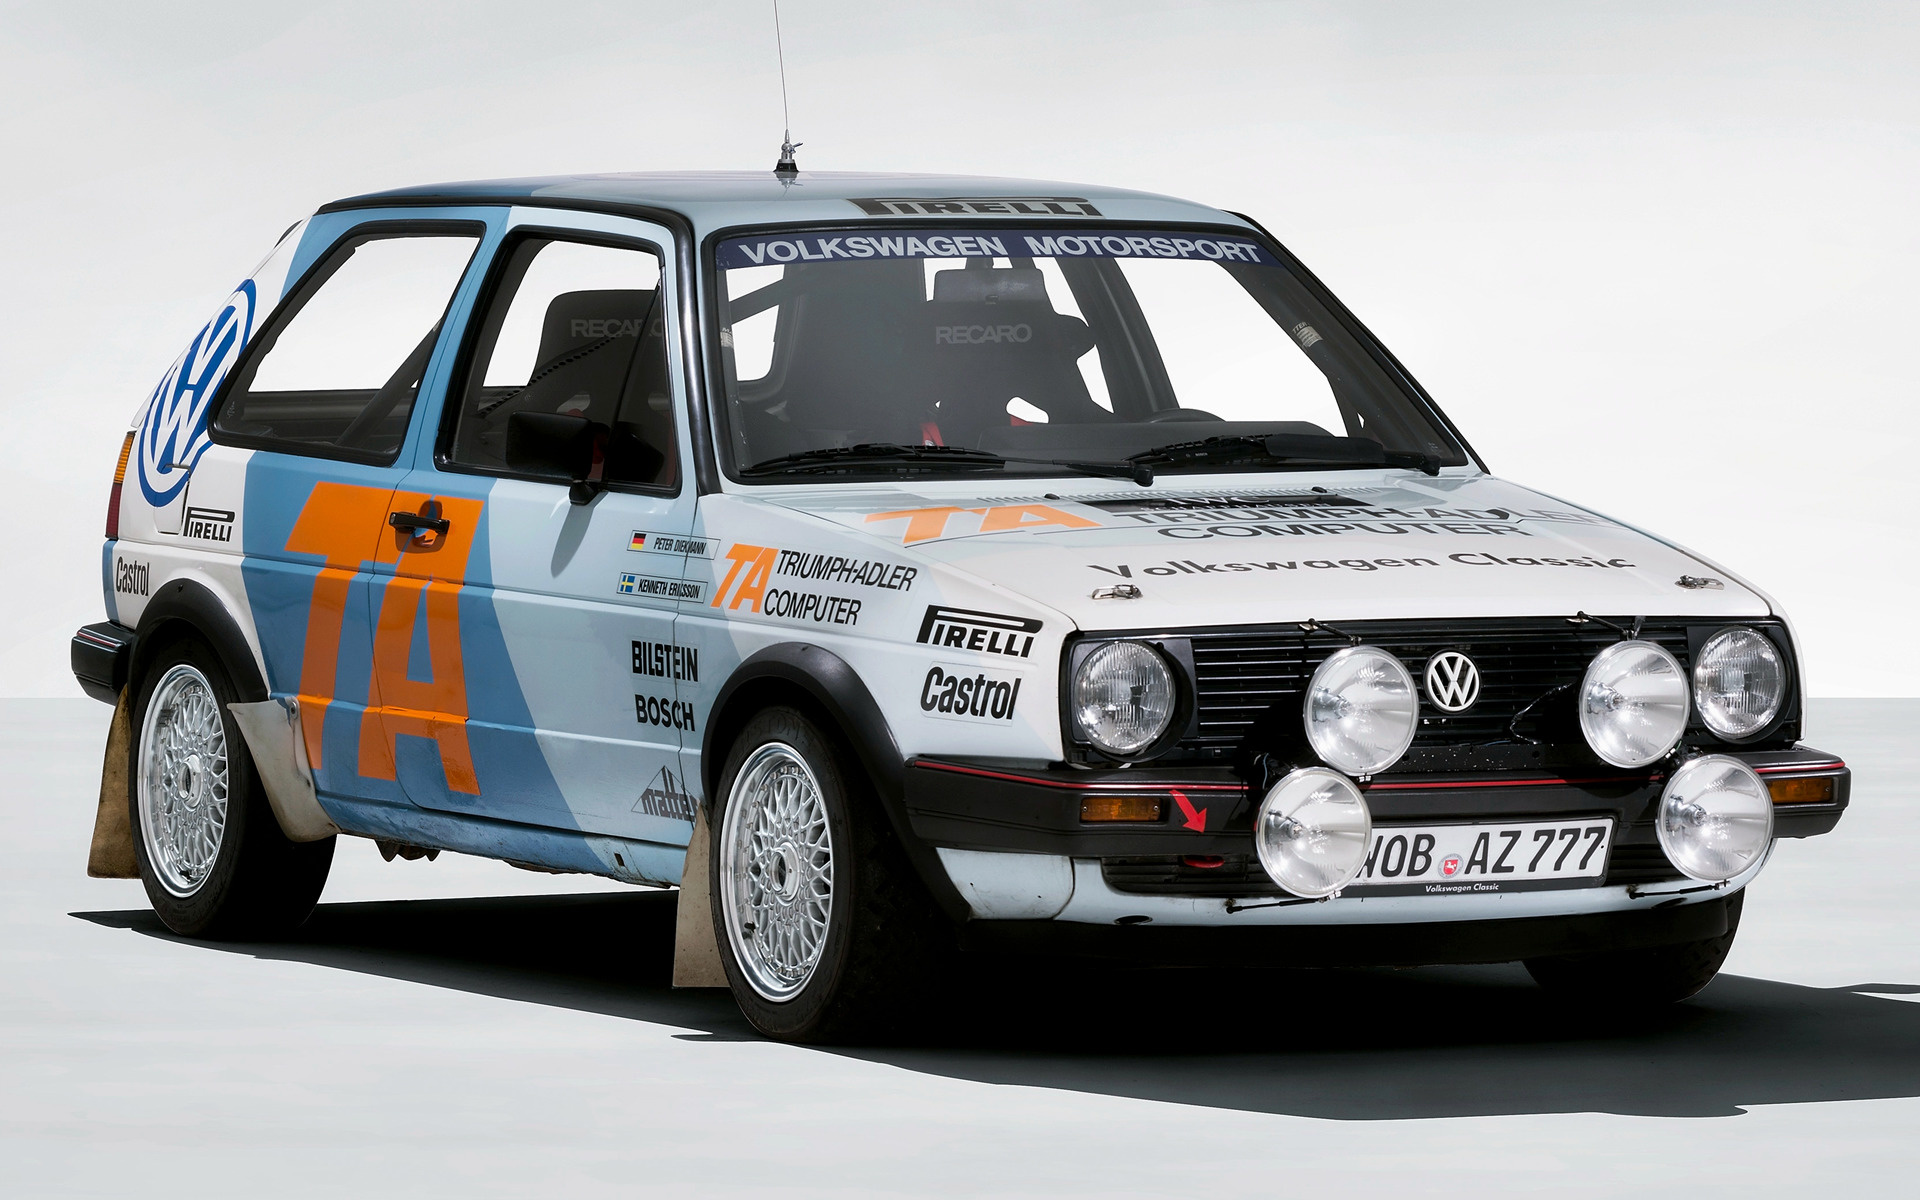 1984 Volkswagen Golf GTI Rally Car - Wallpapers and HD ...